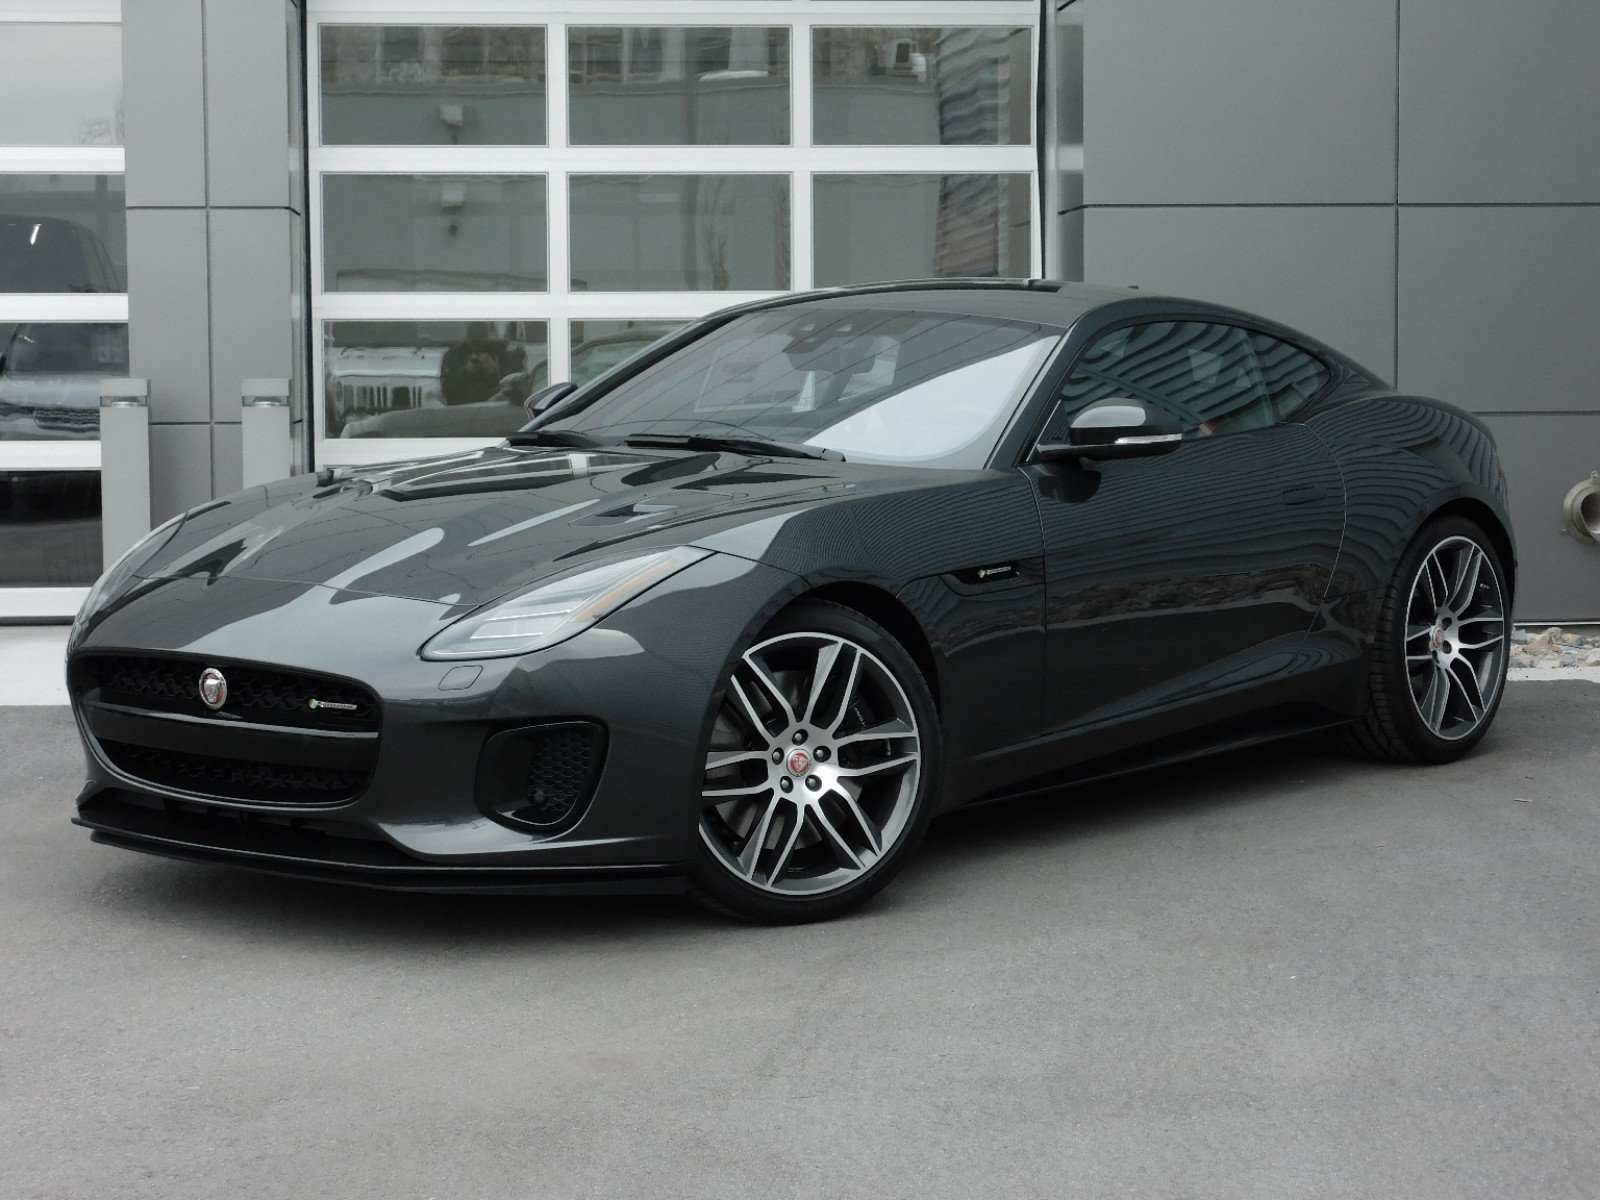 38 New Jaguar Coupe 2020 Redesign and Review